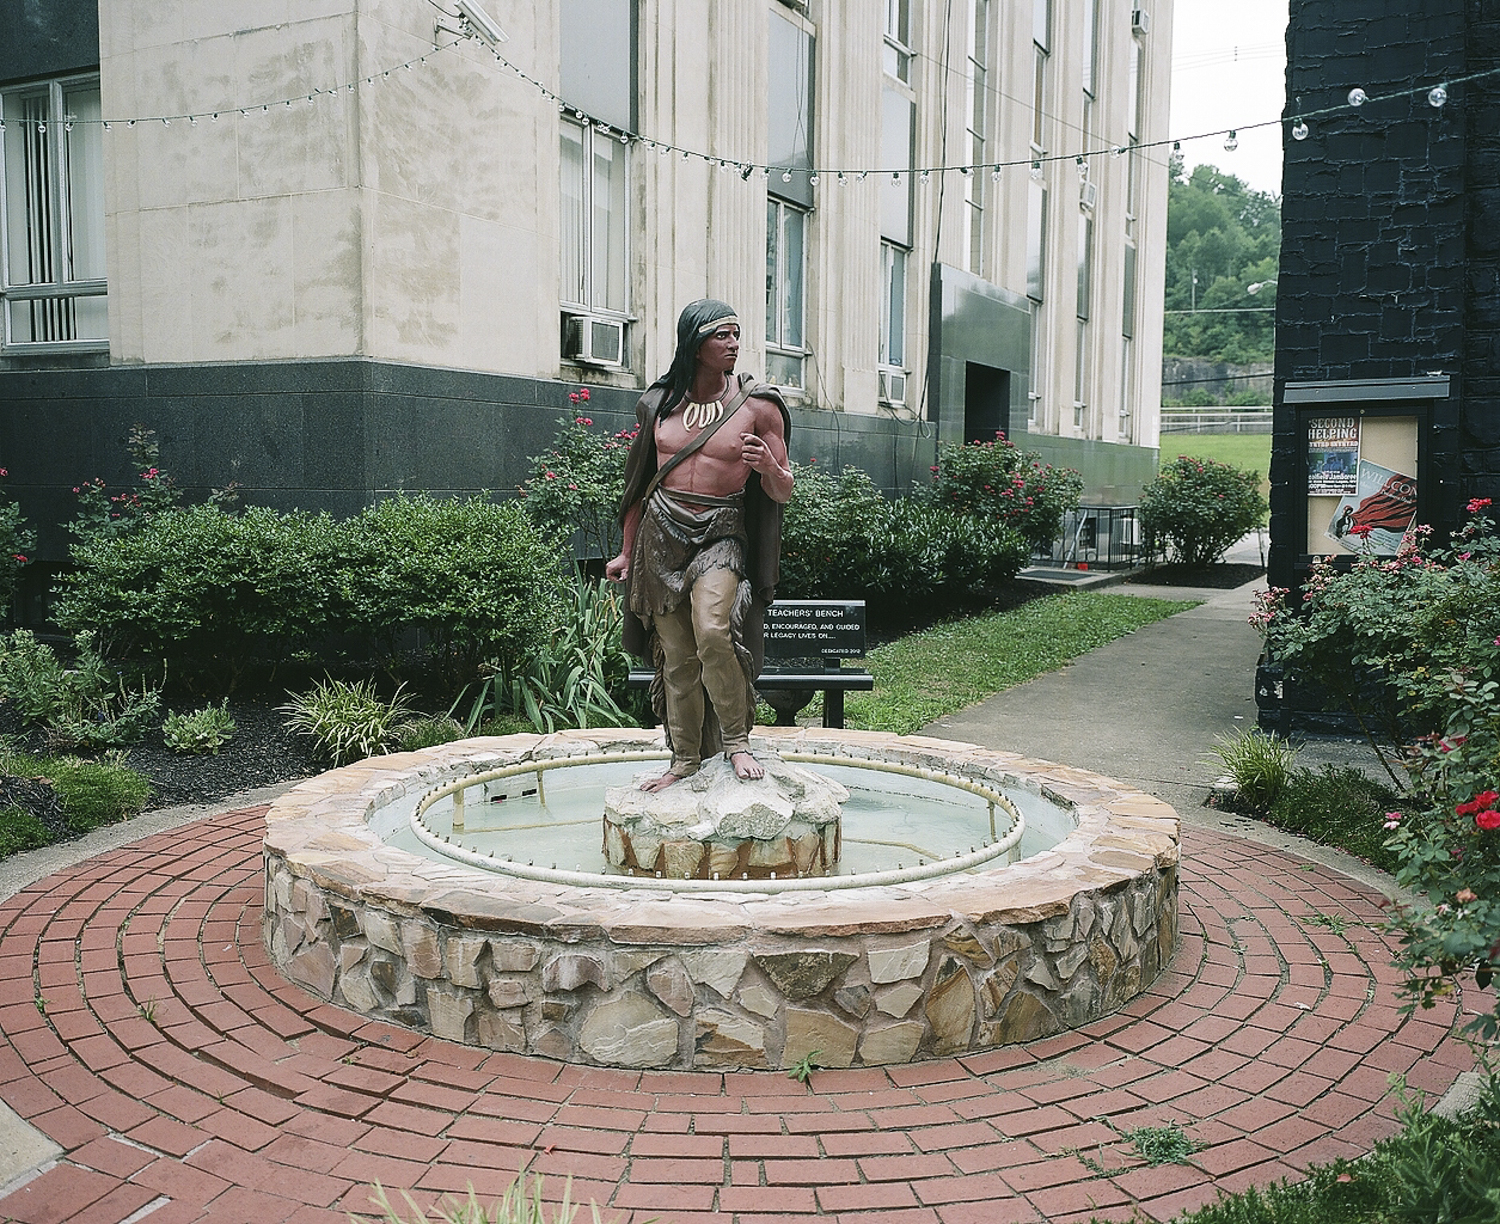 Logan statue outside the Mingo County courthouse, Williamson, West Virginia.